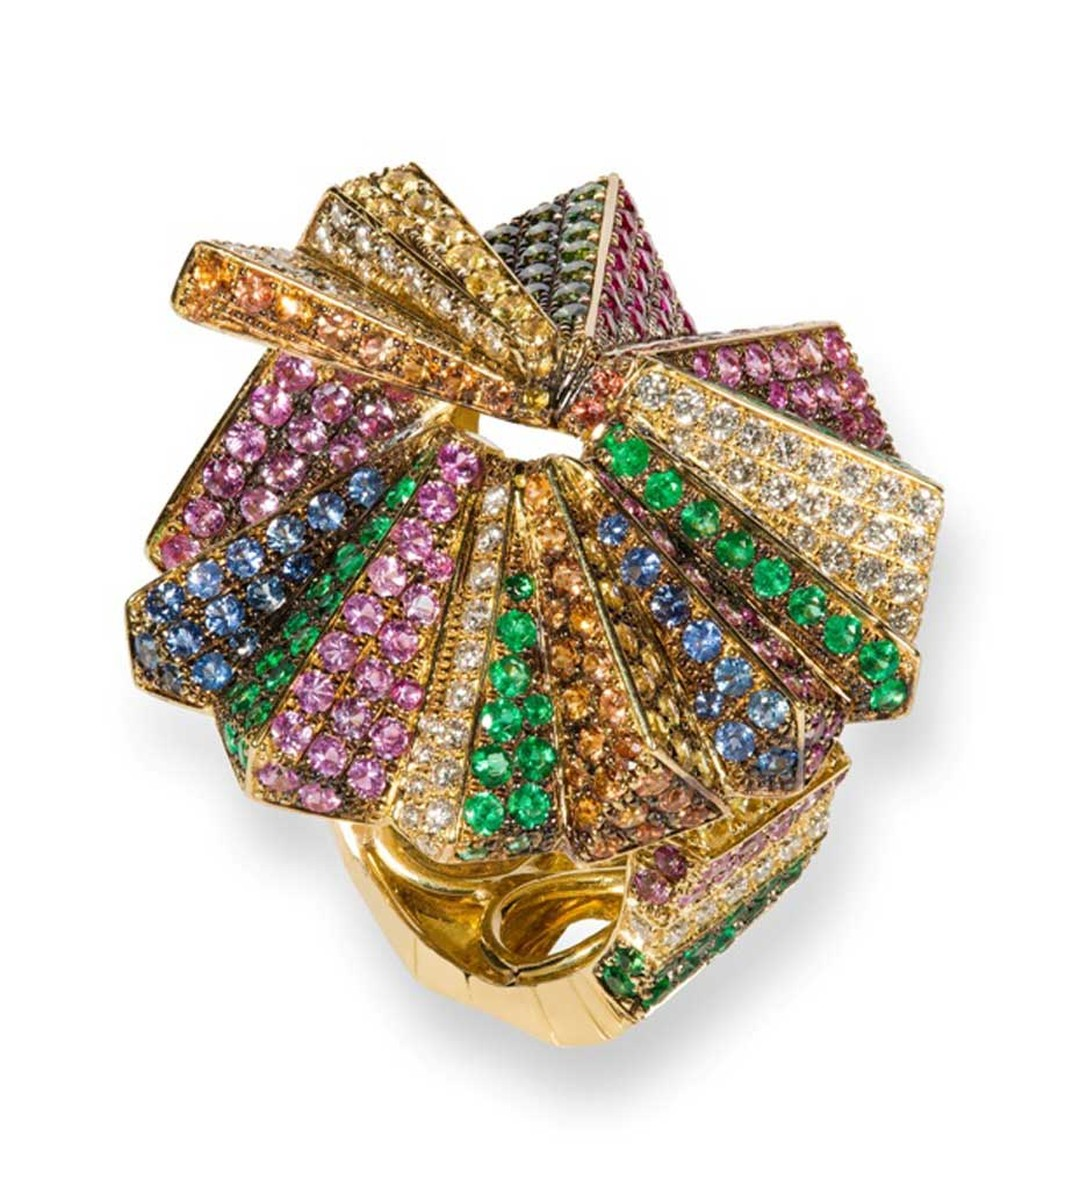 Rosior gold ring set with diamonds, rubies, sapphires and emeralds.